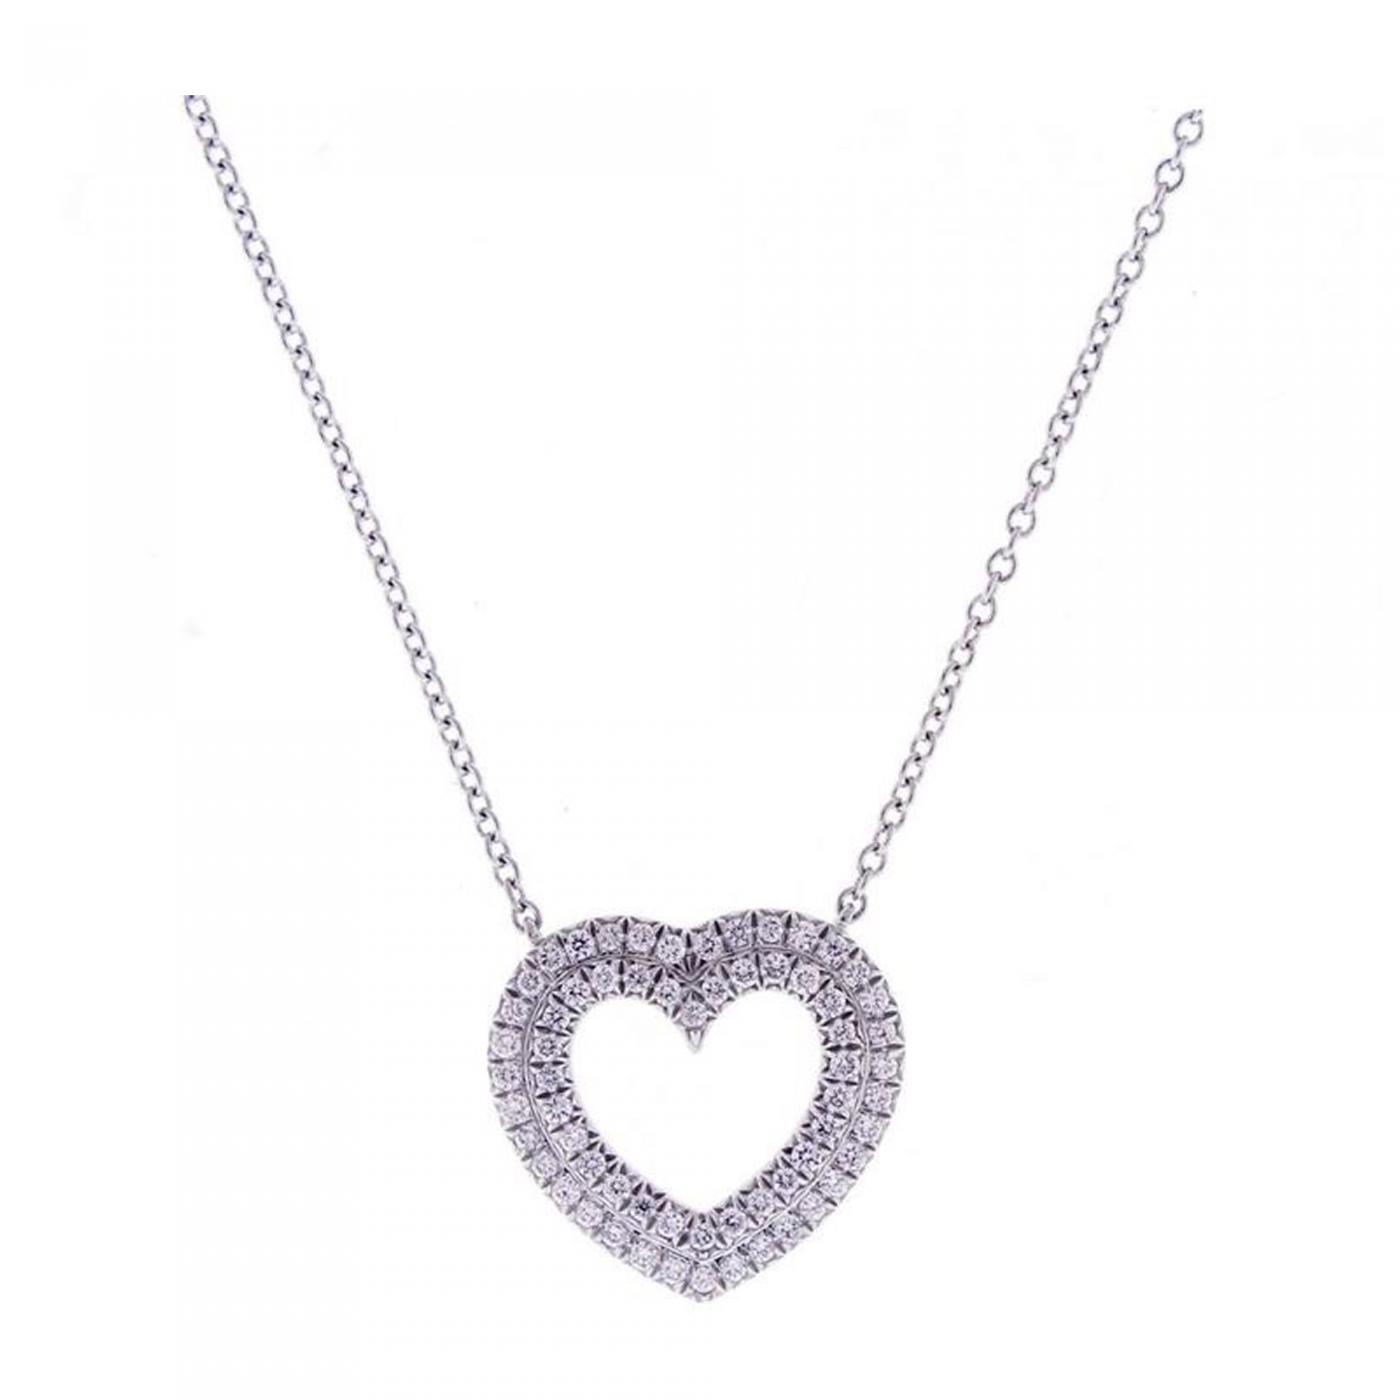 size necklace product heart os jewellery necklaces contempo jewelry